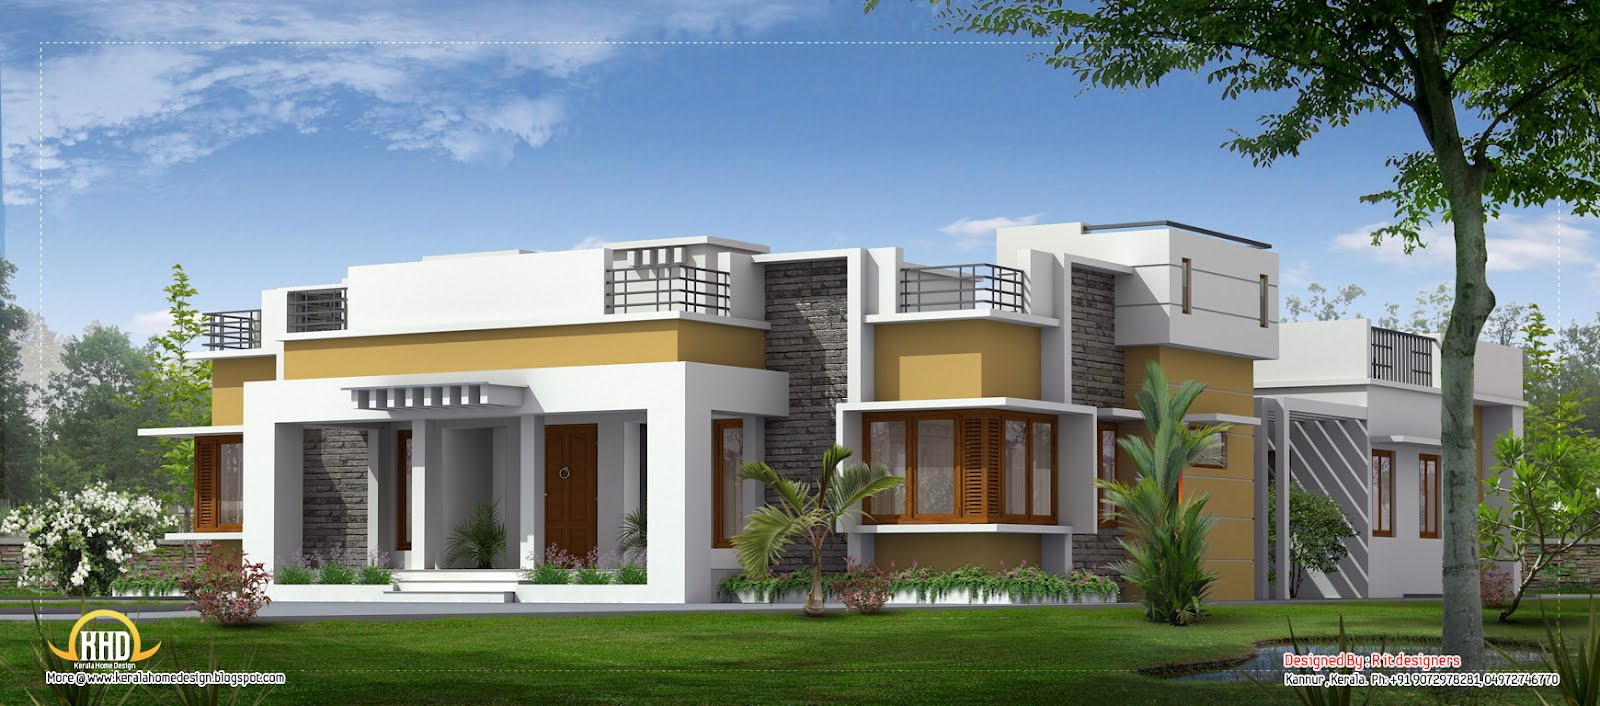 Beautiful Single Floor Home 2910 Sq Ft Kerala House